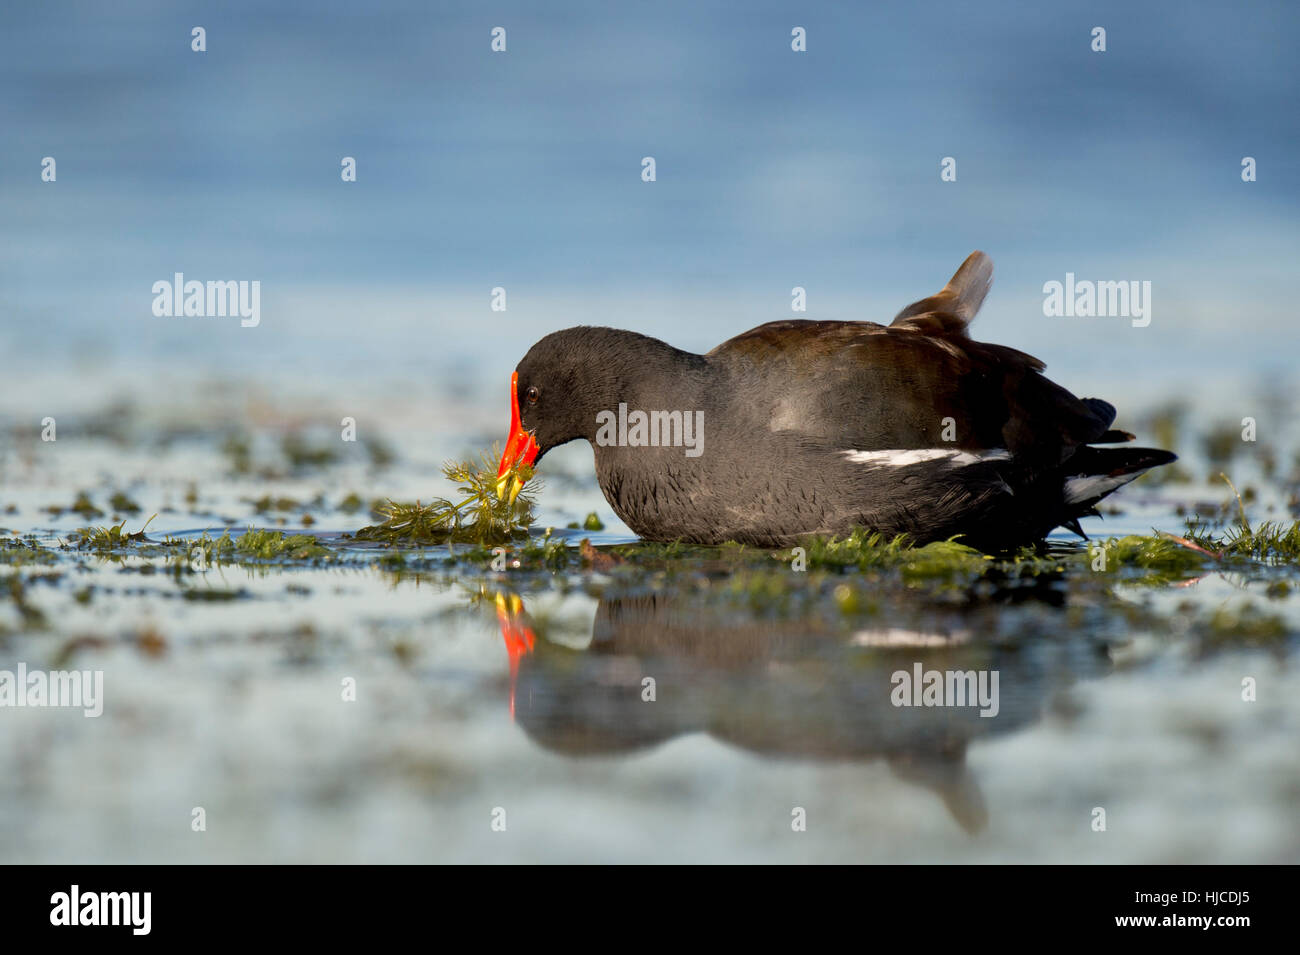 A Common Gallinule feeds on water vegetation in the shallow water with a reflection of the bird. - Stock Image